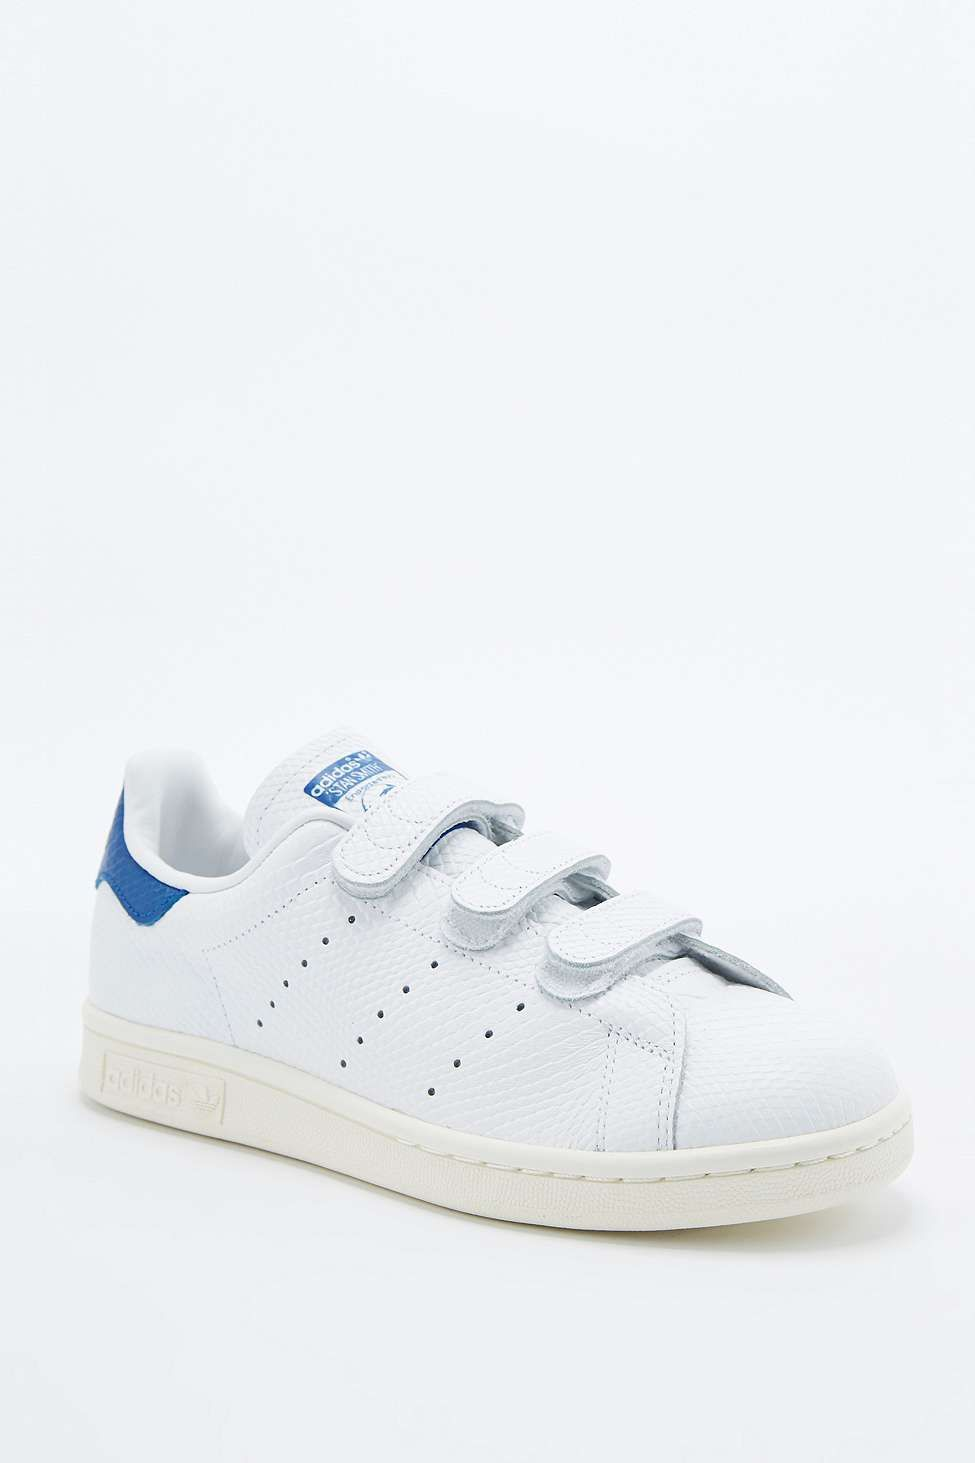 livraison gratuite 6ee0f 158e2 adidas Originals - Baskets Stan Smith blanc/bleu à scratch ...